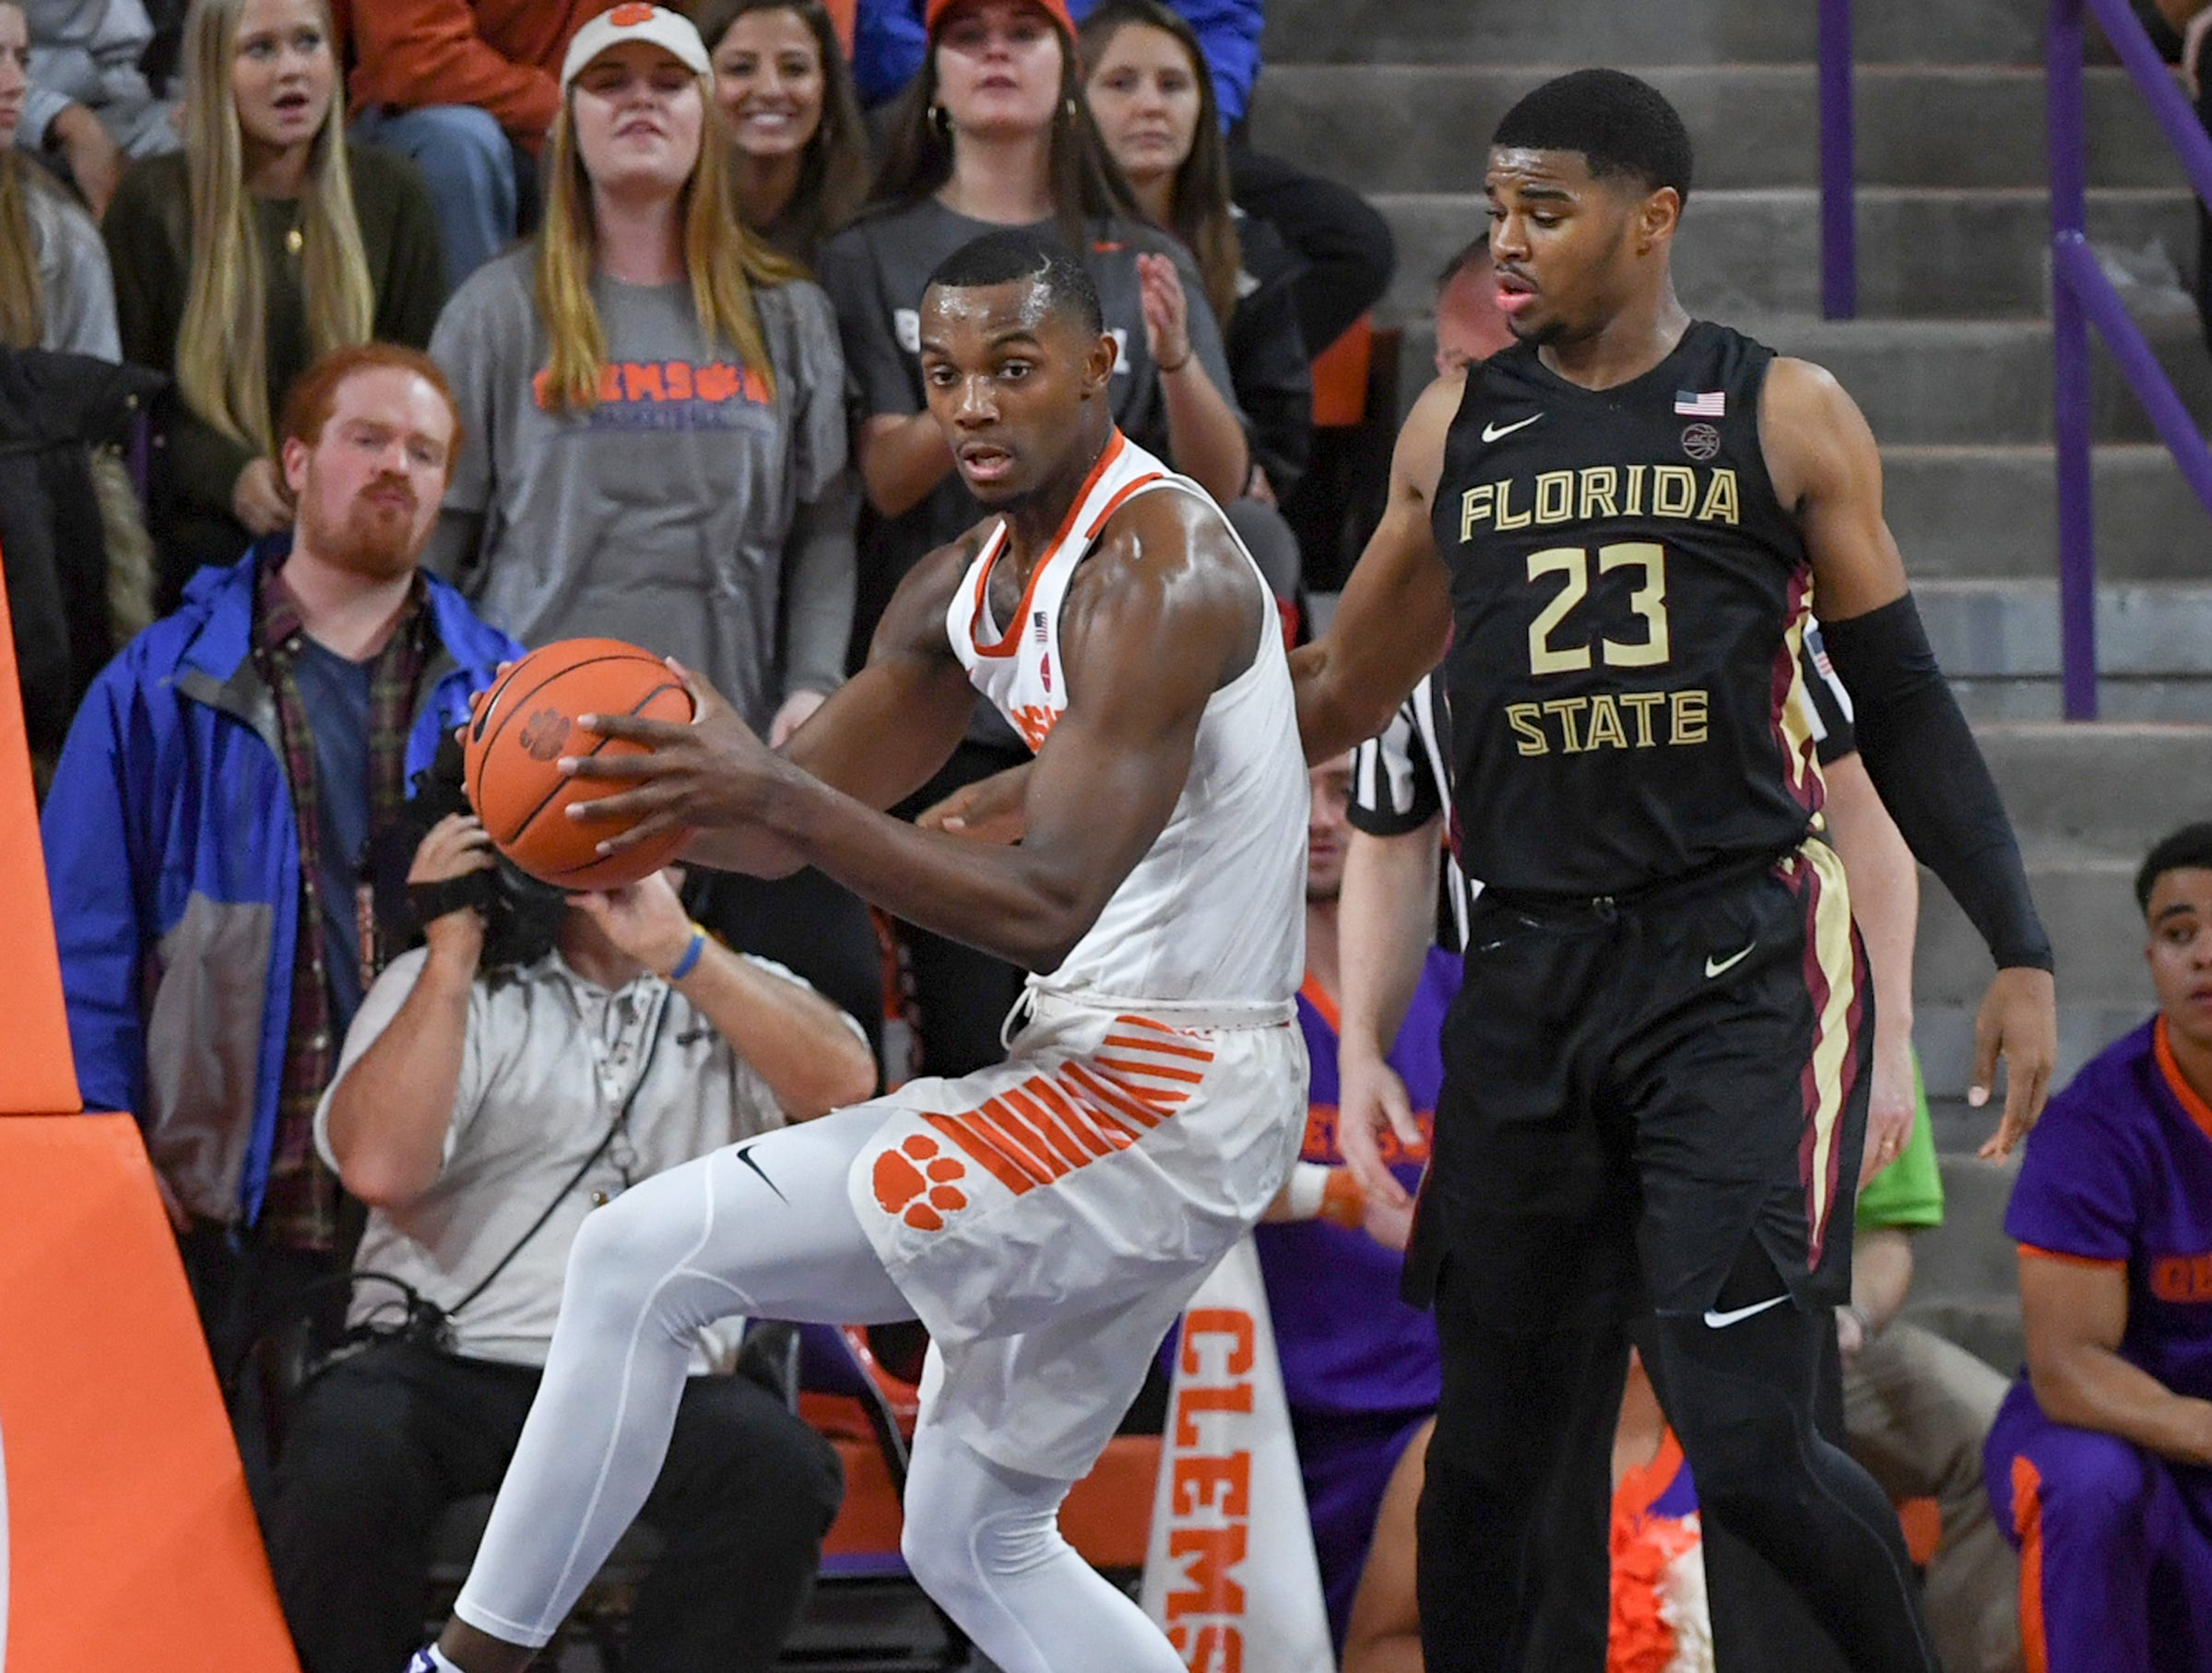 Clemson forward Aamir Simms (25) rebounds near Florida State guard M.J. Walker(23) during the second half at Littlejohn Coliseum in Clemson Tuesday, February 19, 2019.